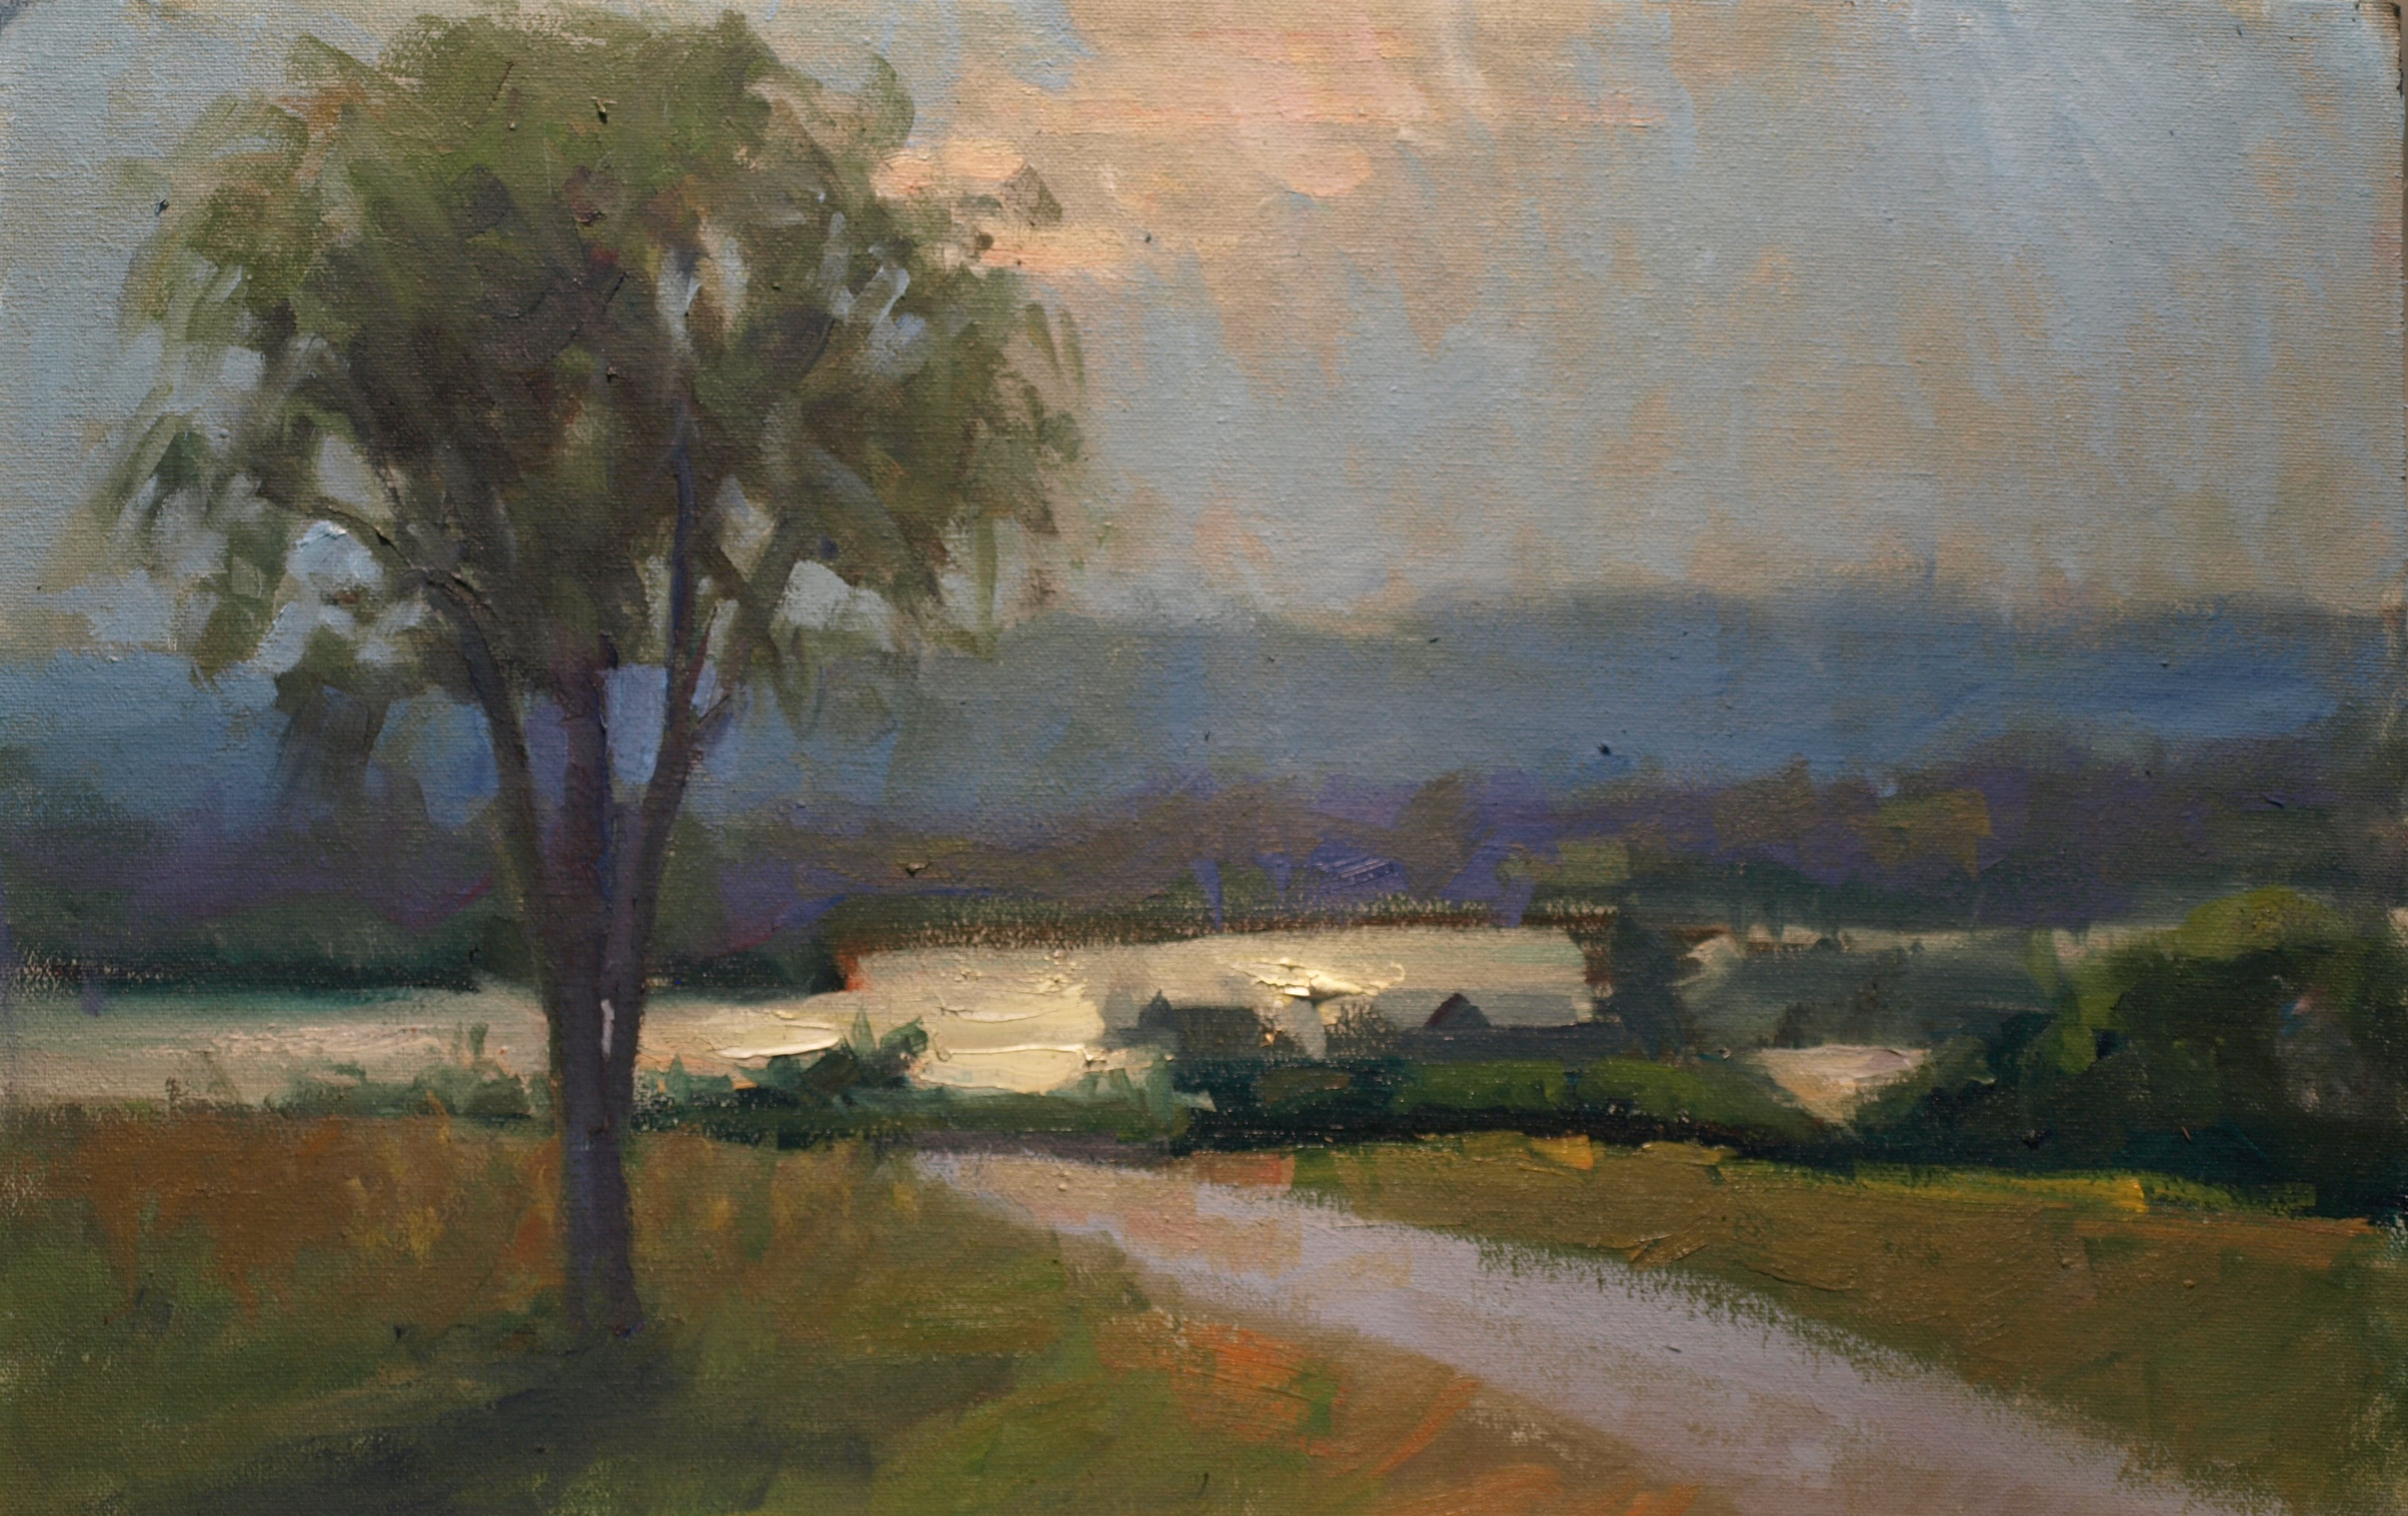 Sunlit Lake, Oil on Canvas on Panel, 12 x 18 Inches, by Susan Grisell, $300